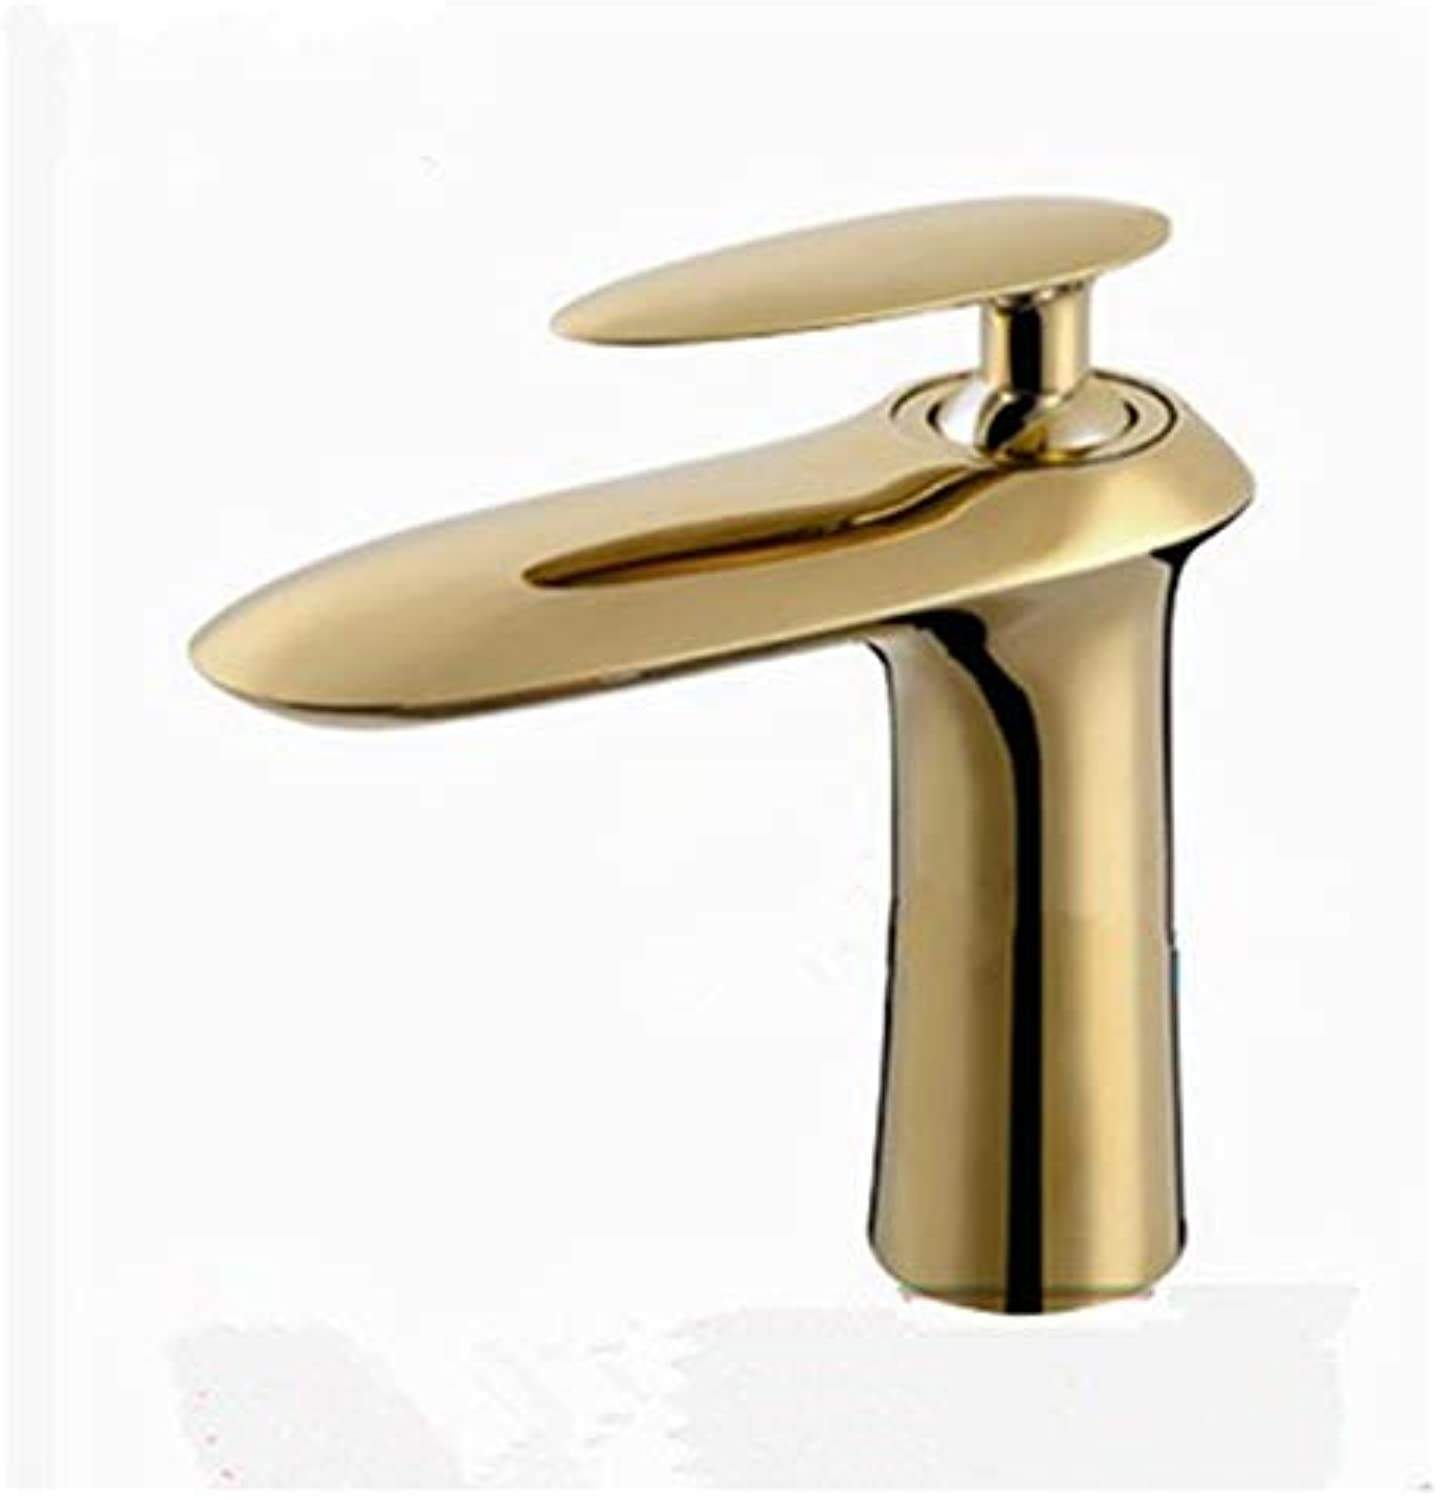 JONTON Taps Taps Taps Copper Basin Faucet Modern gold Basin Faucet Black Retro European gold-Plated Hot And Cold Water Bathroom Cabinet